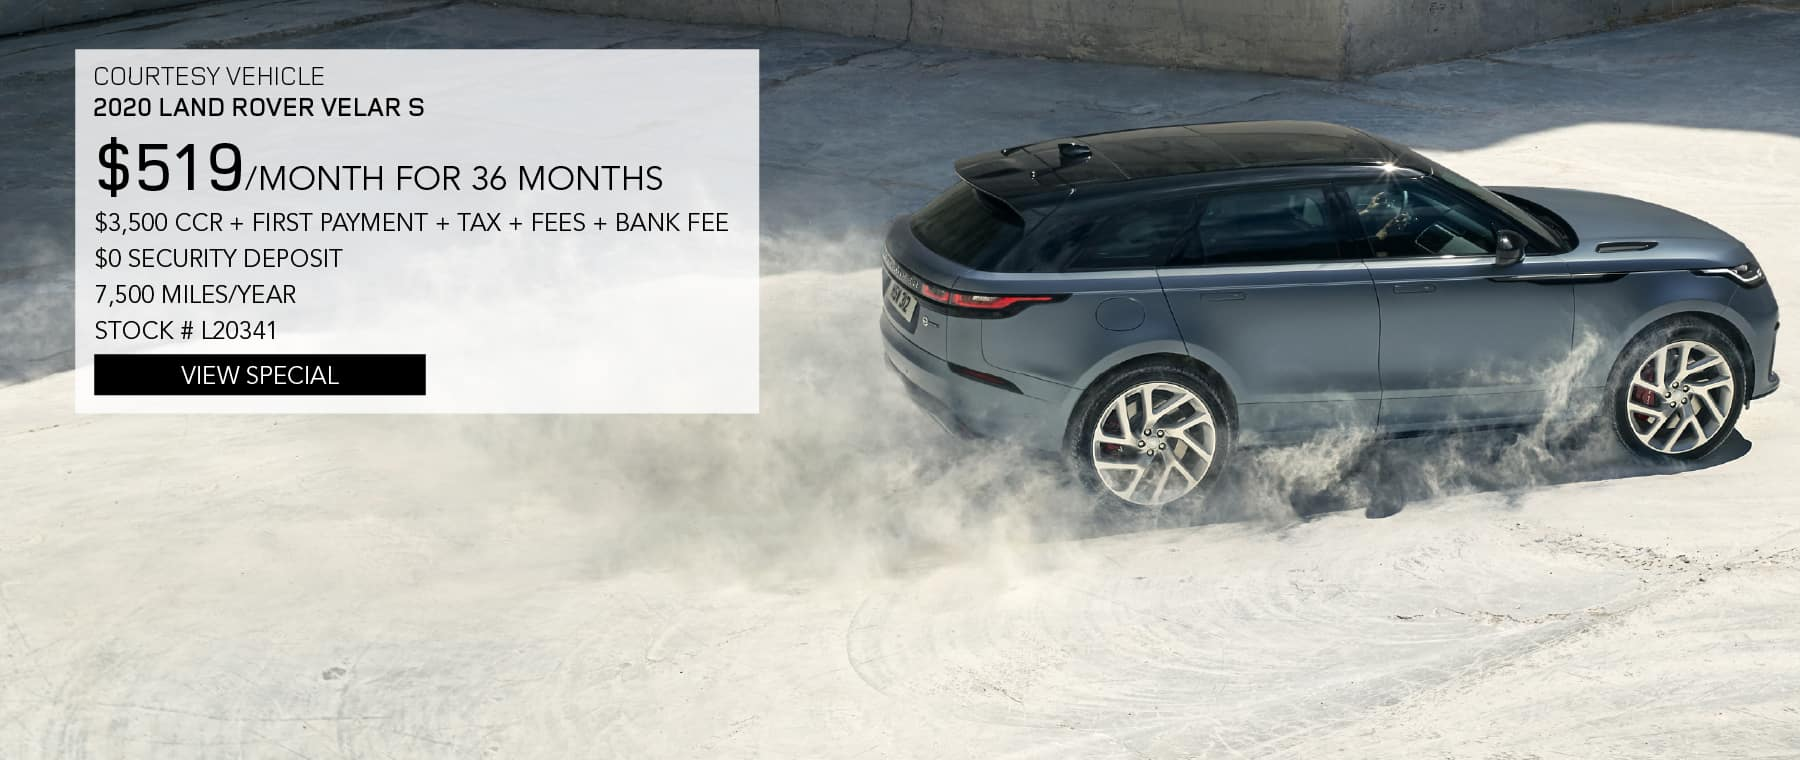 COURTESY VEHICLE. 2020 RANGE ROVER VELAR S. $519 PER MONTH FOR 36 MONTHS. $3,500 CCR + FIRST PAYMENT + TAX + FEES + BANK FEE. $0 SECURITY DEPOSIT. 7,500 MILES PER YEAR. STOCK NUMBER L20341. VIEW SPECIAL. SILVER RANGE ROVER VELAR DRIVING DOWN DIRT ROAD.